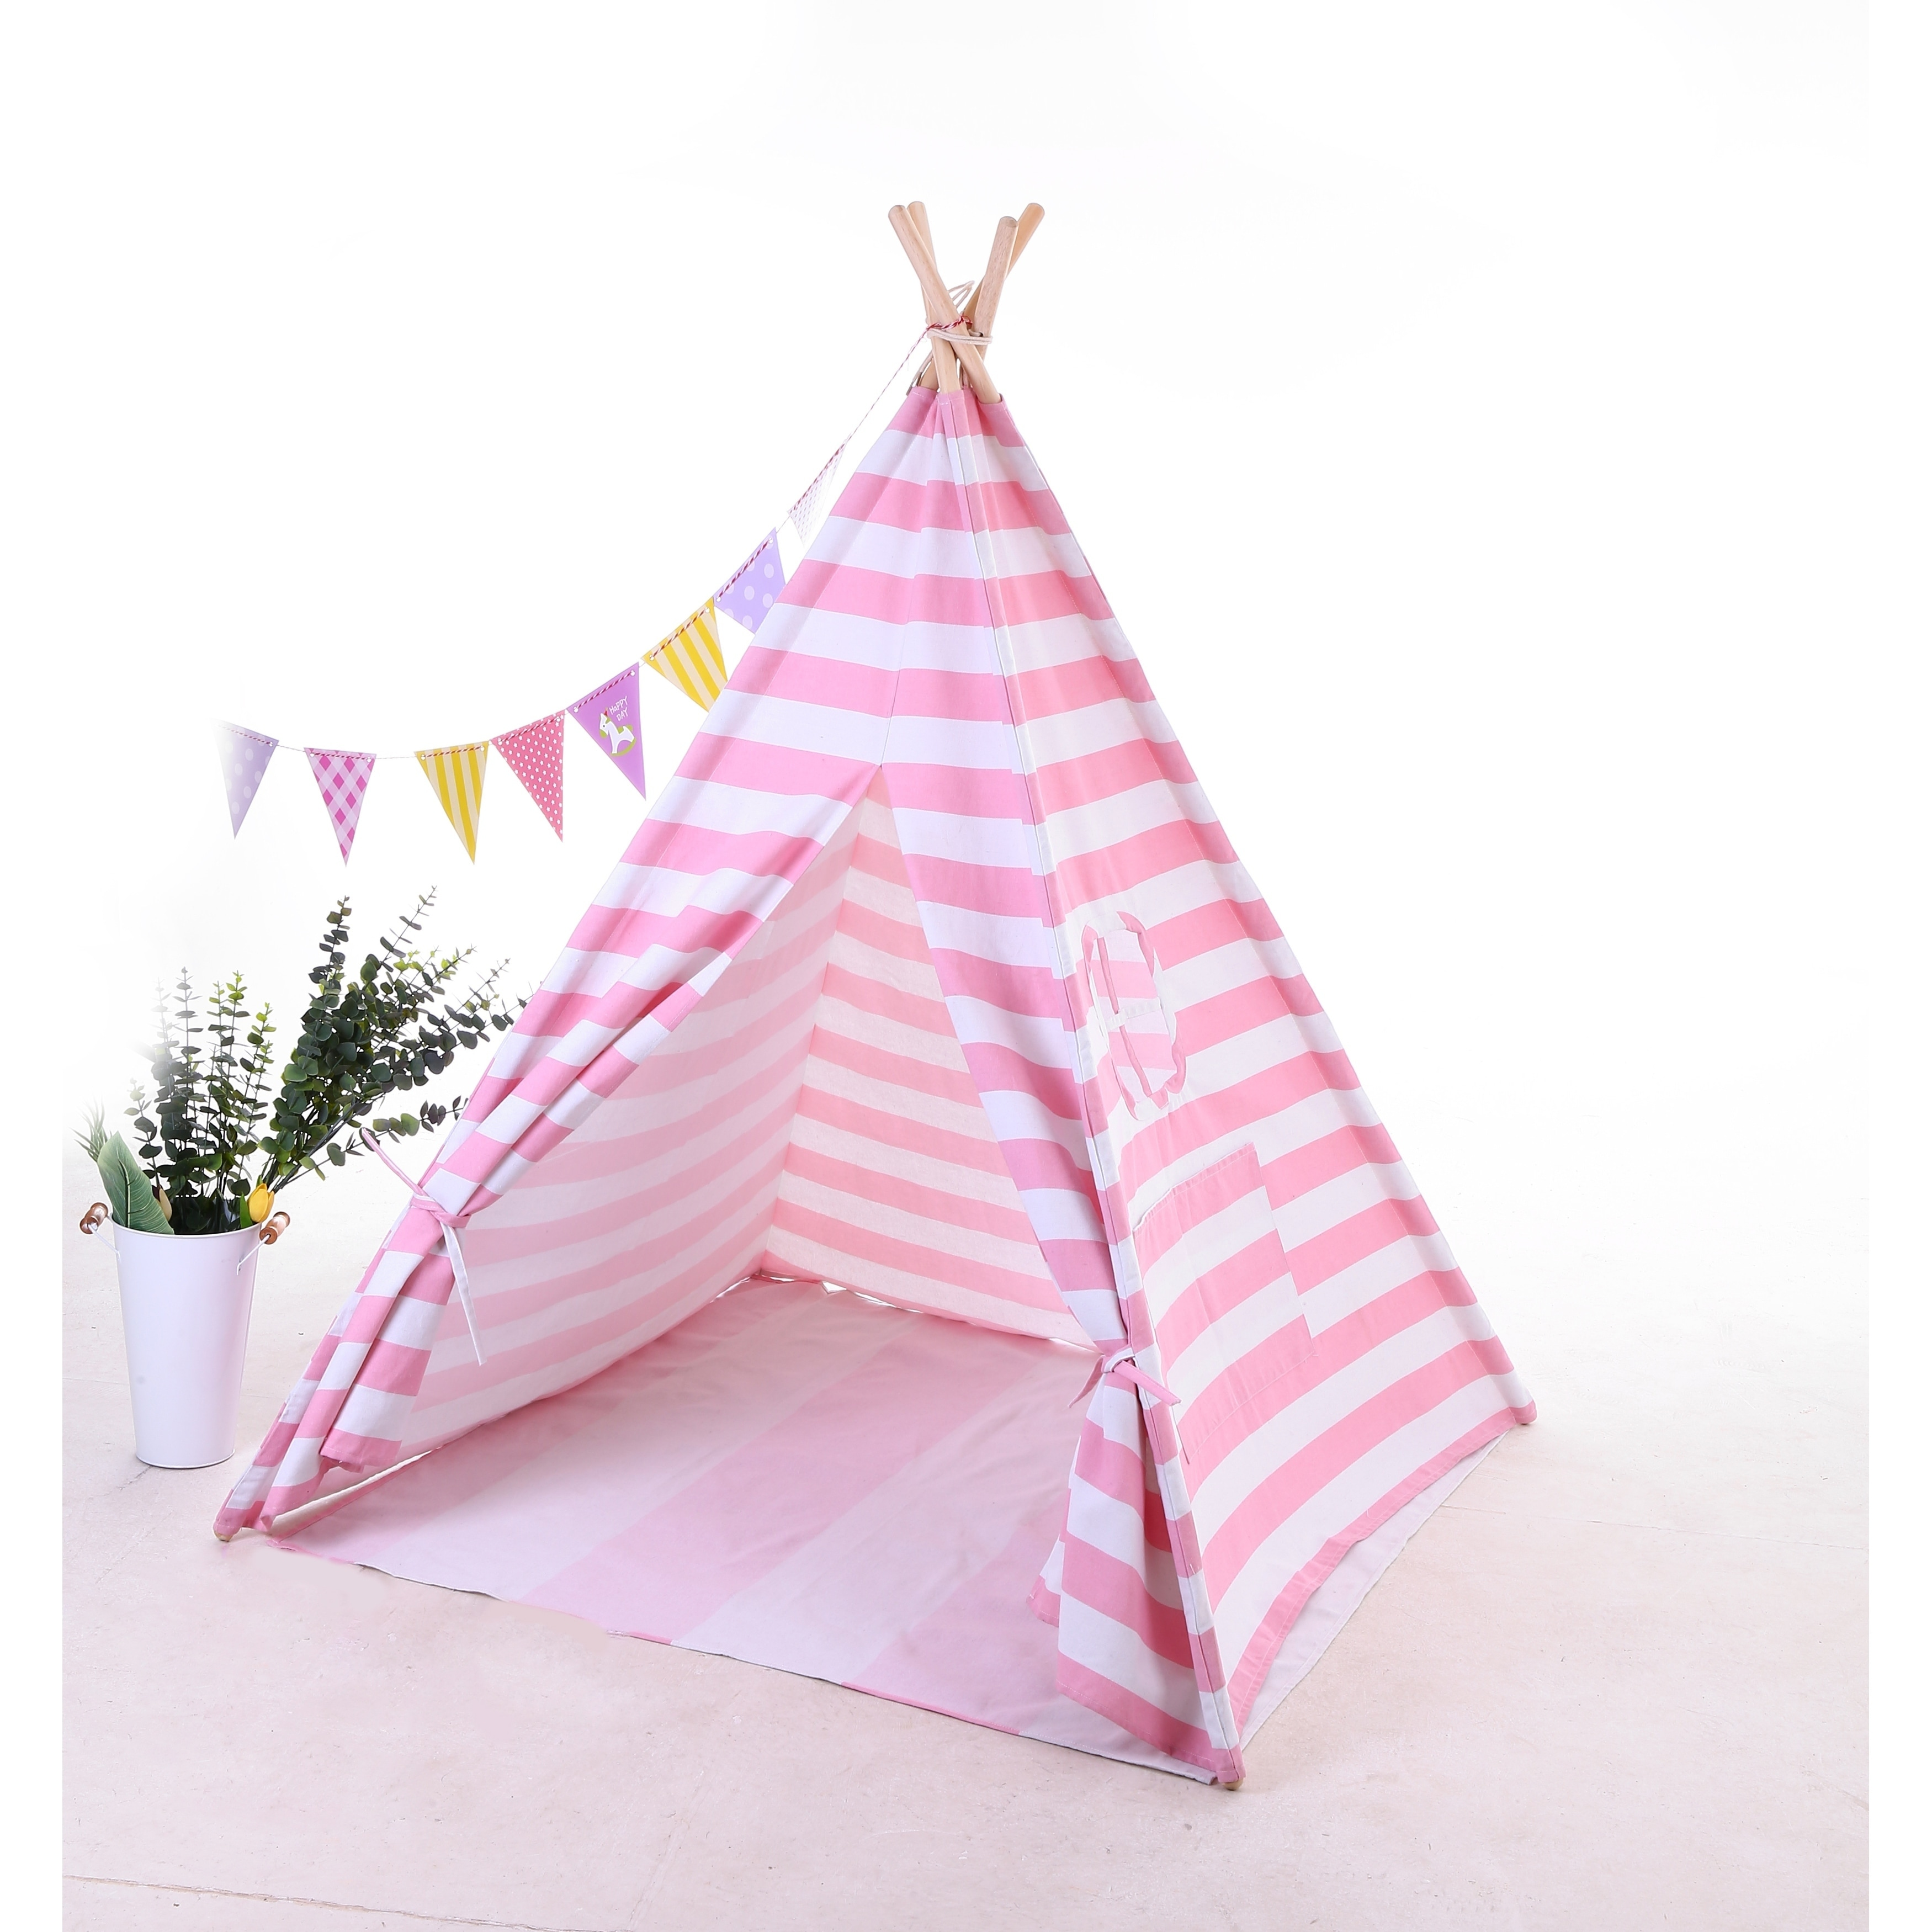 Shop Teepee Tent For Kids With Carry Case Cavas Toys For Girls Boys Girls Overstock 30260519